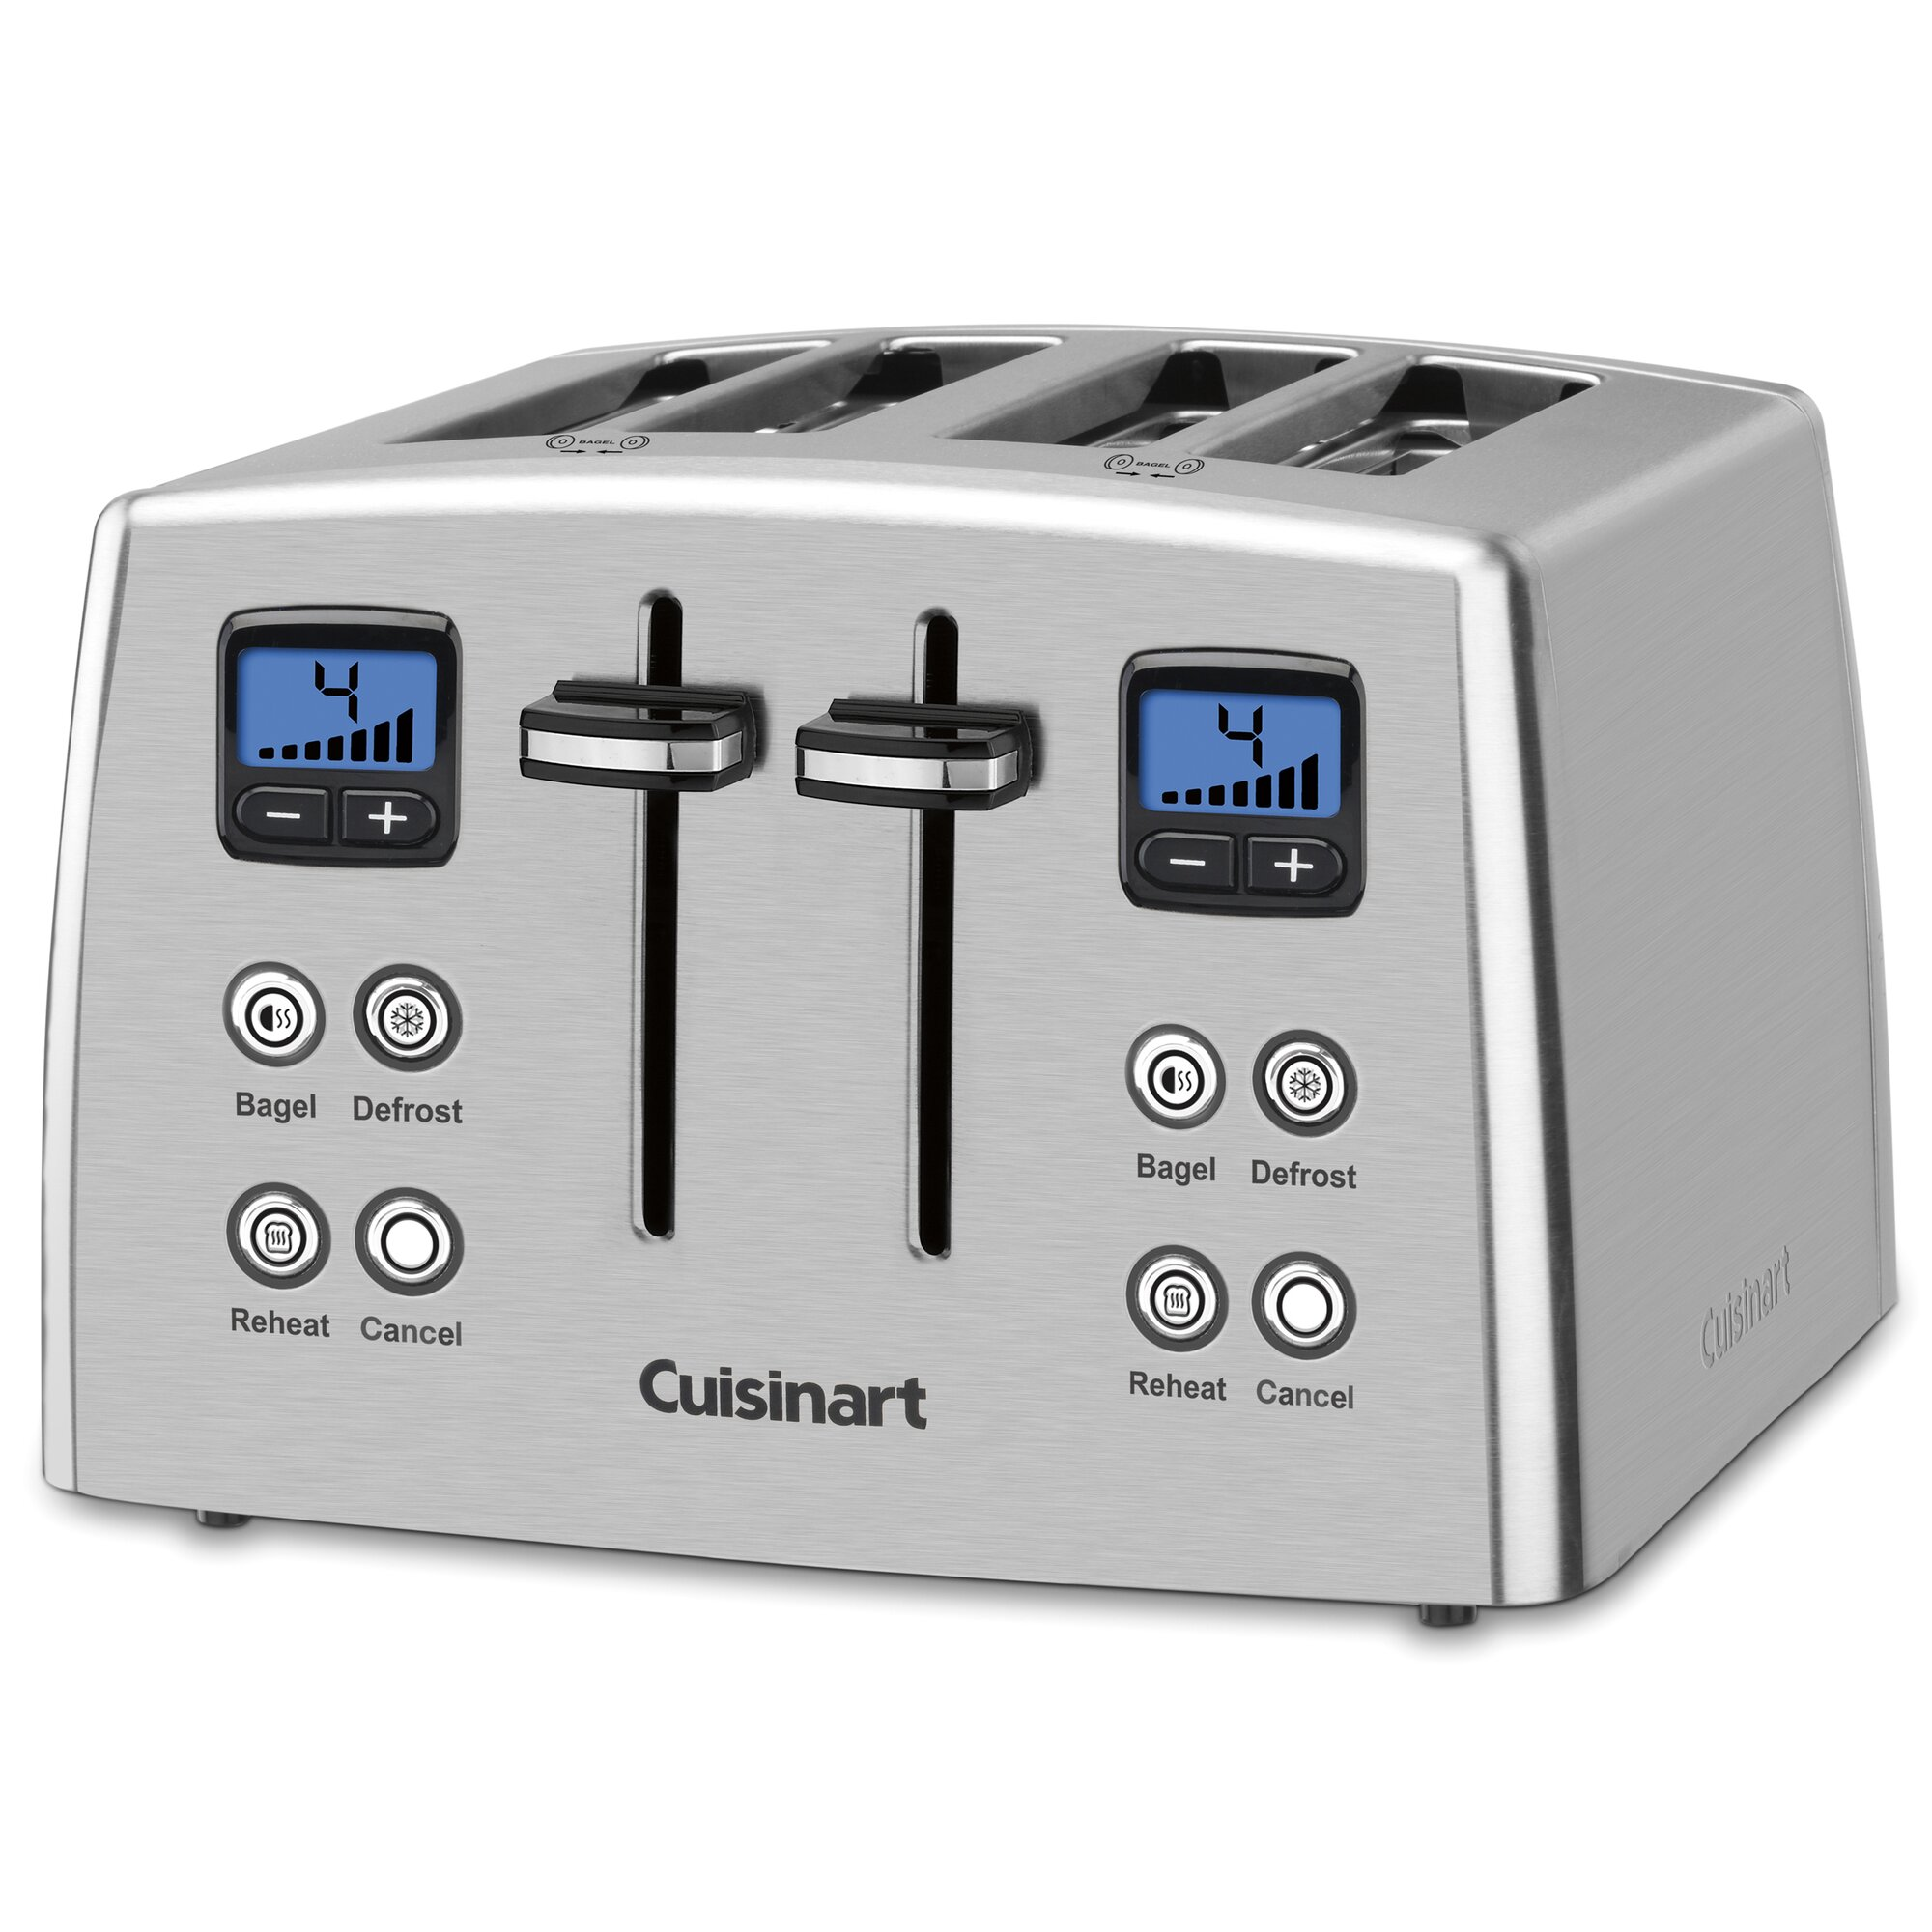 Cuisinart Compact 4 Slice Toaster Cuisinart Classic Series 4 Slice Compact Toaster & Reviews ...